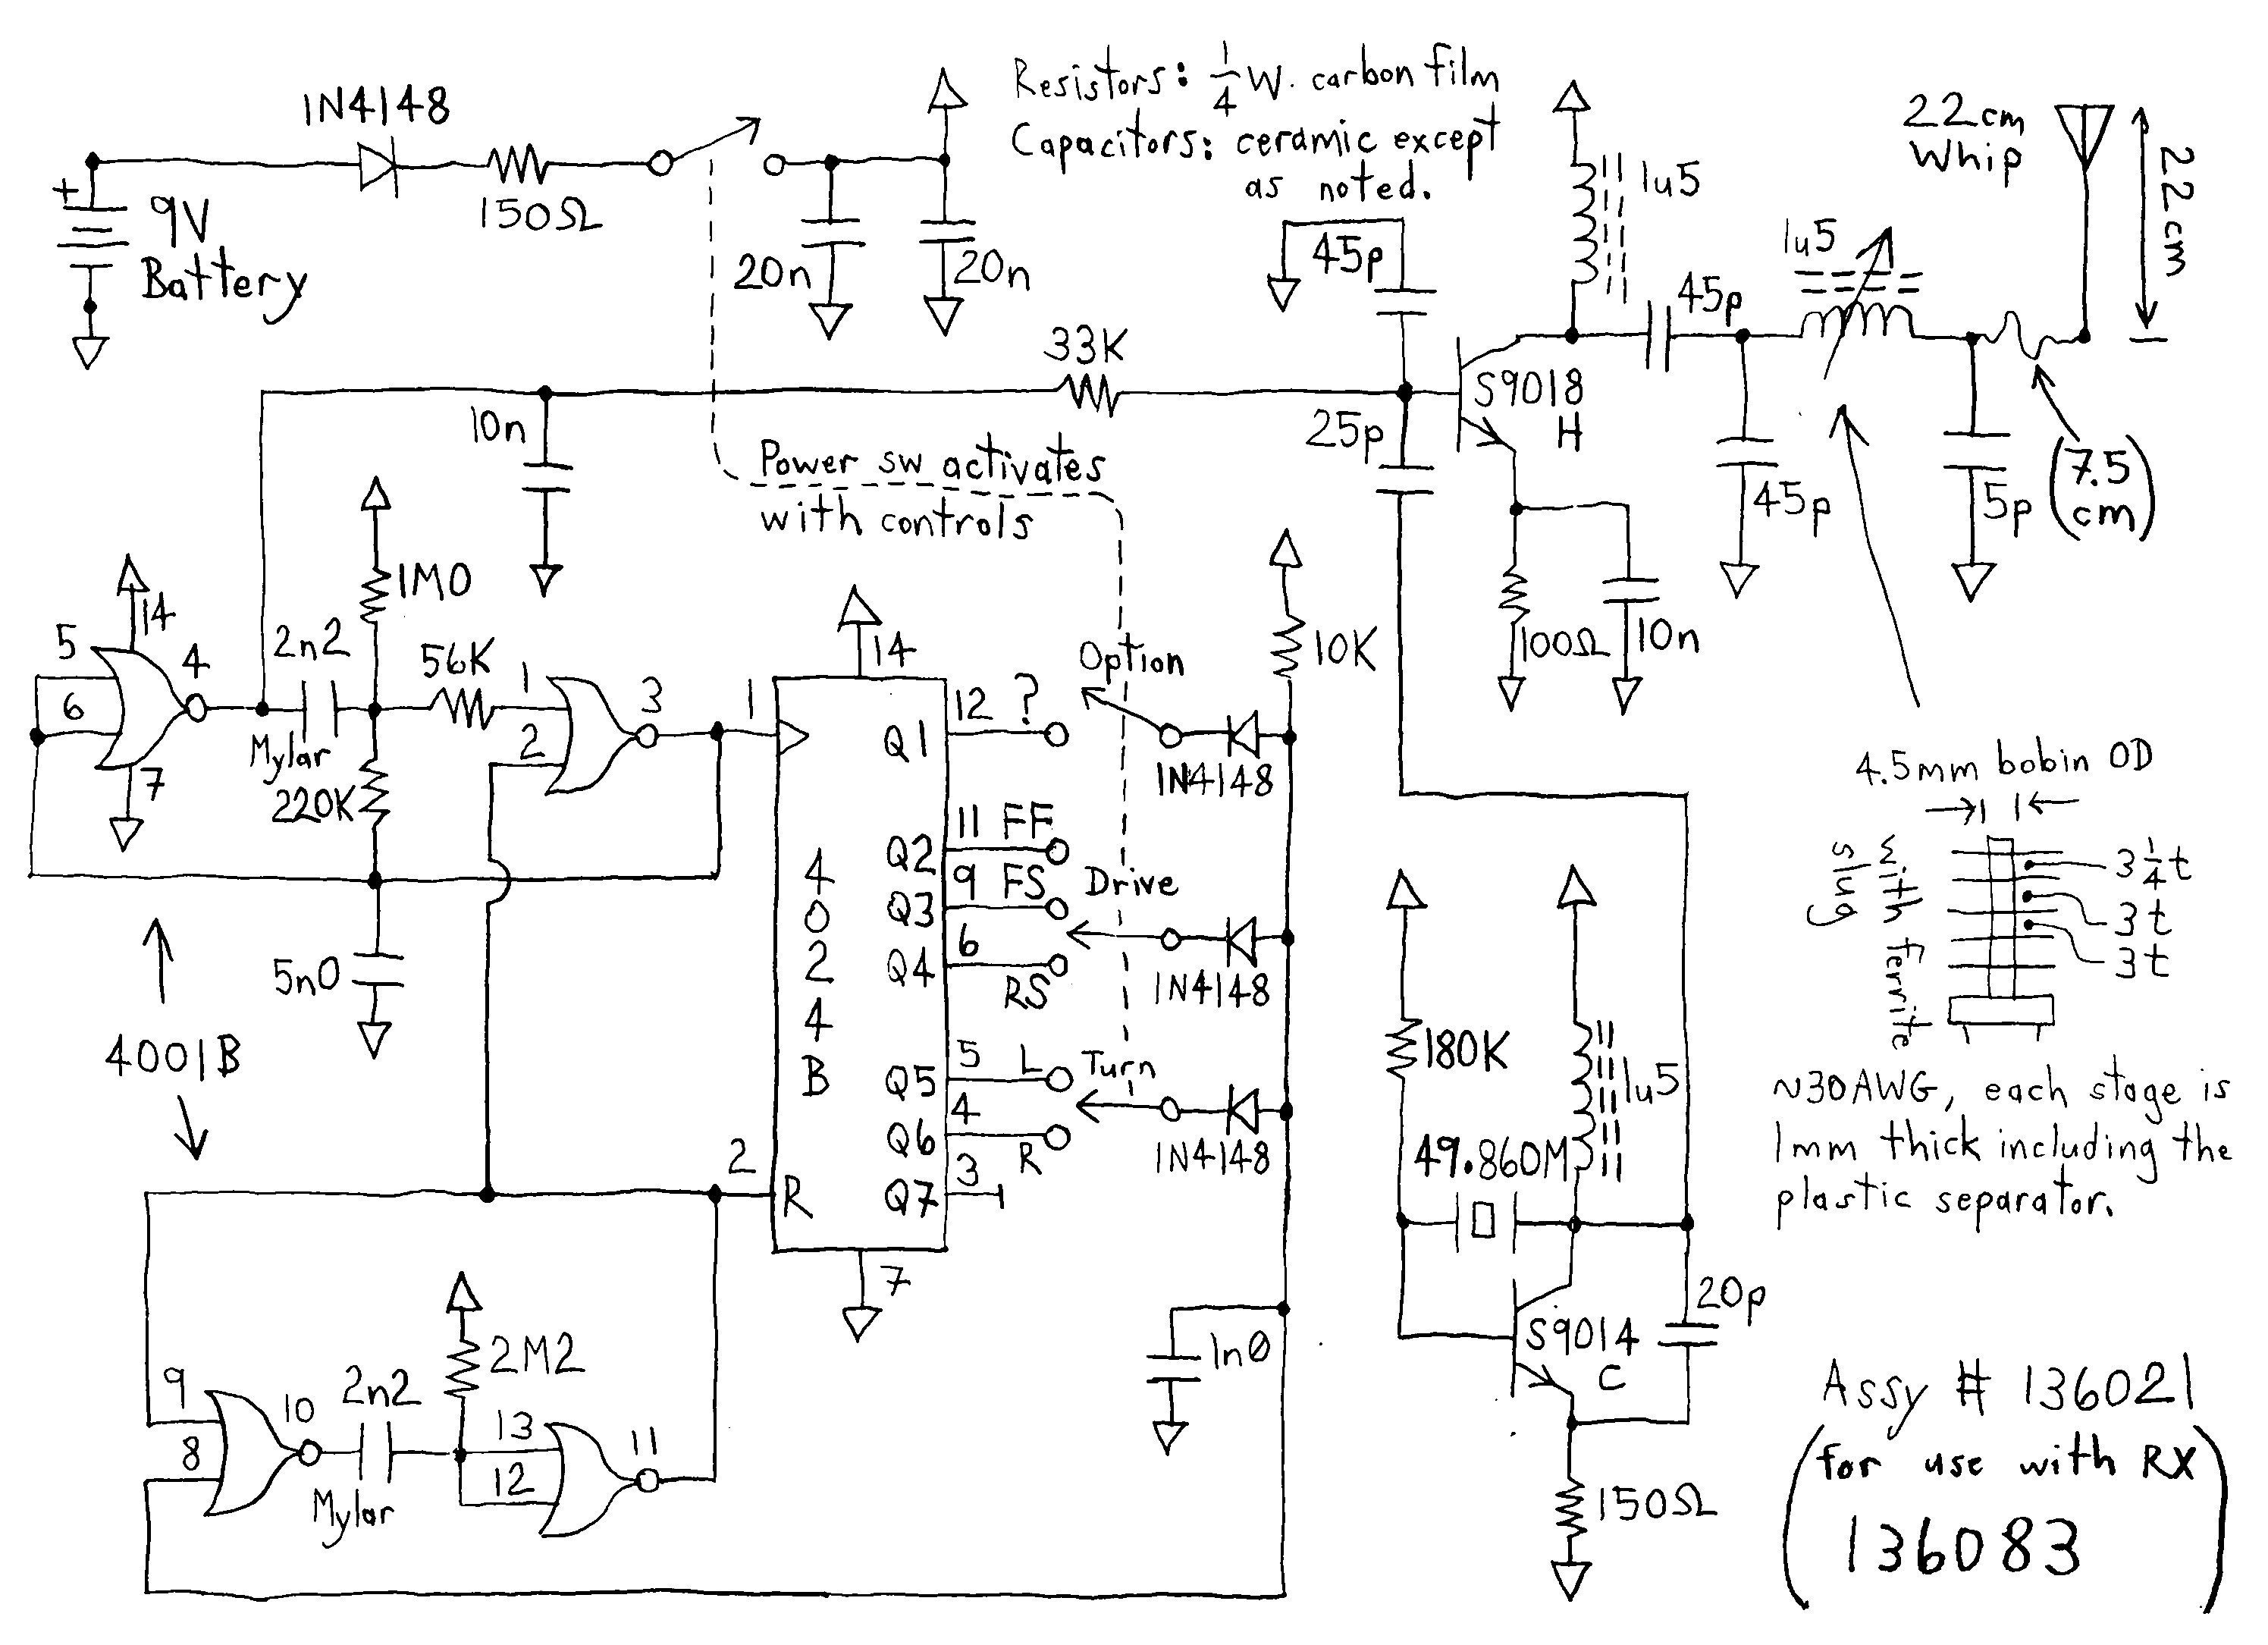 car inverter wiring diagram new luxury wiring diagram zen car of car  inverter wiring diagram valid. We collect lots of pictures about Mack Truck  Fuse Box ...